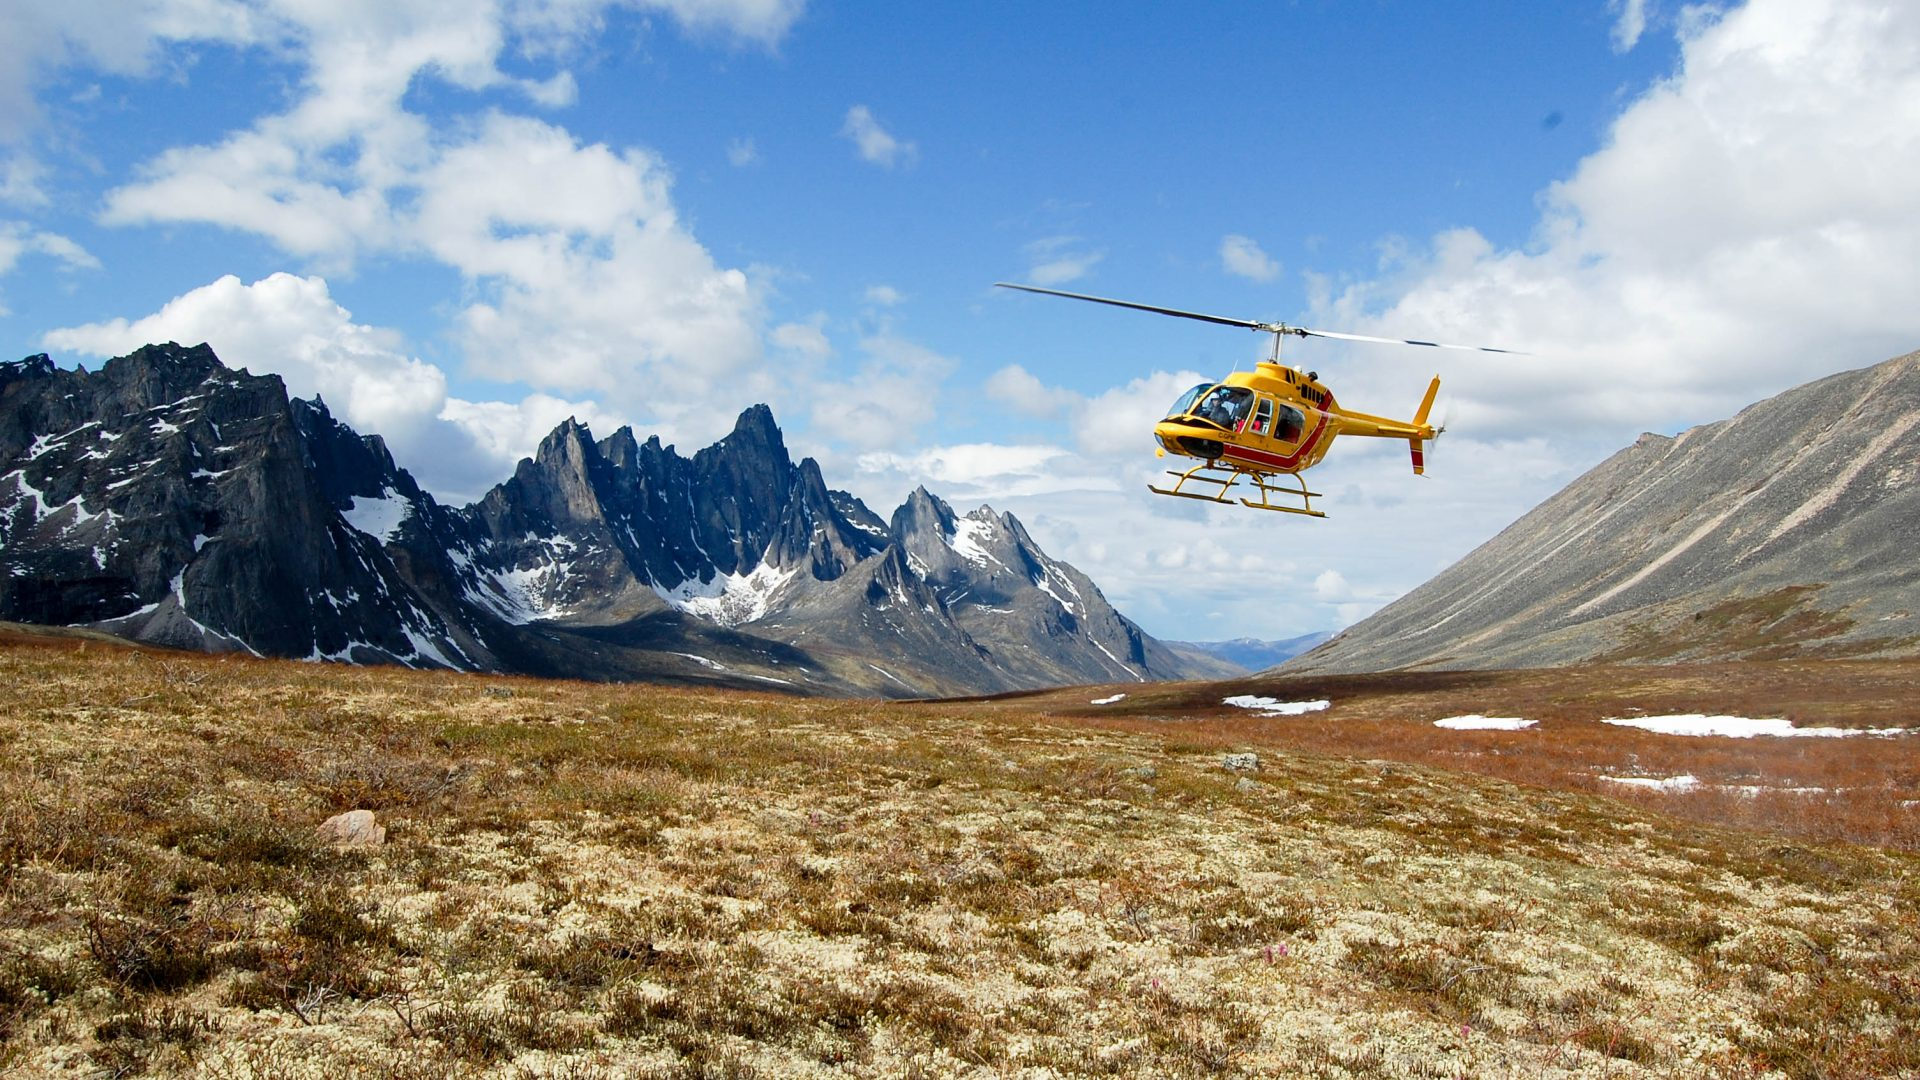 Explore Remote Valleys -Trekking Tombstone Mountain - transfer with helicopter